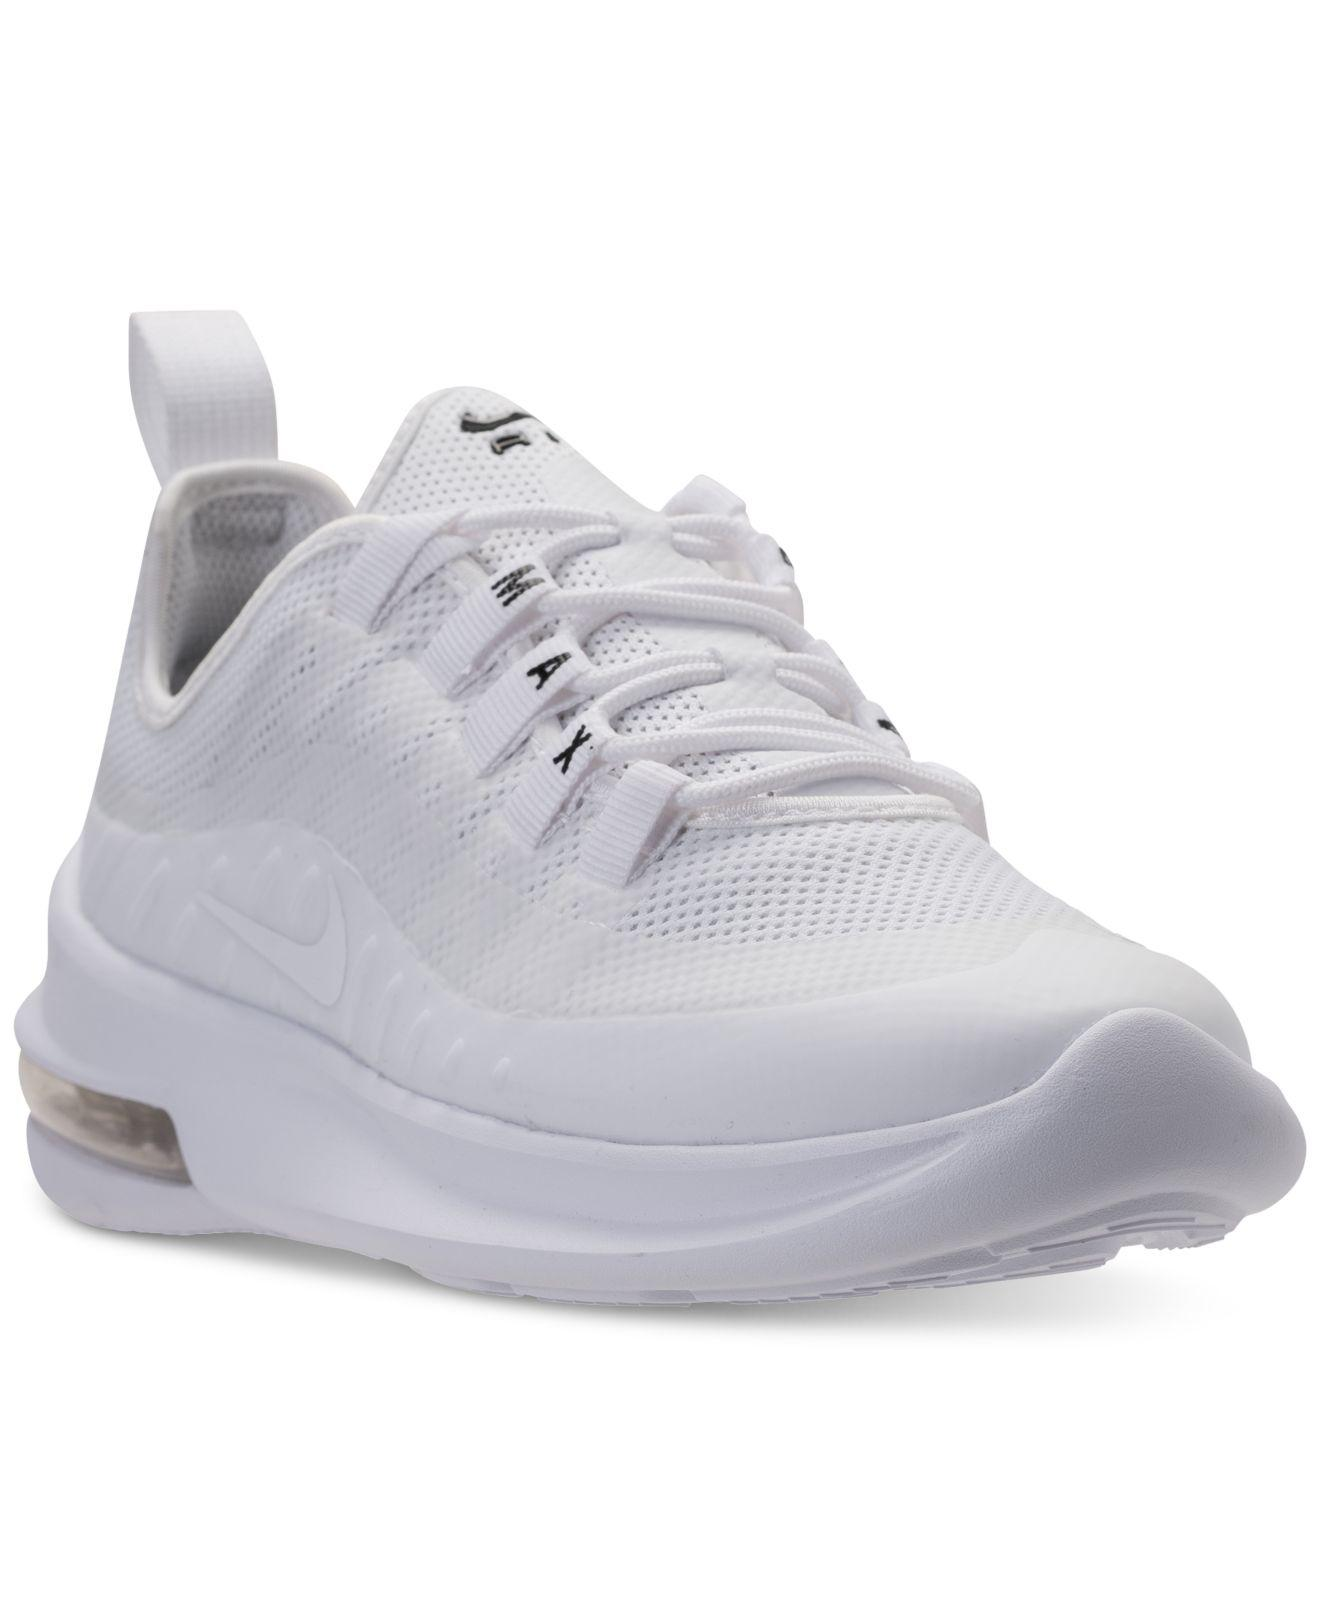 Nike - White Air Max Axis Casual Sneakers From Finish Line for Men - Lyst.  View Fullscreen